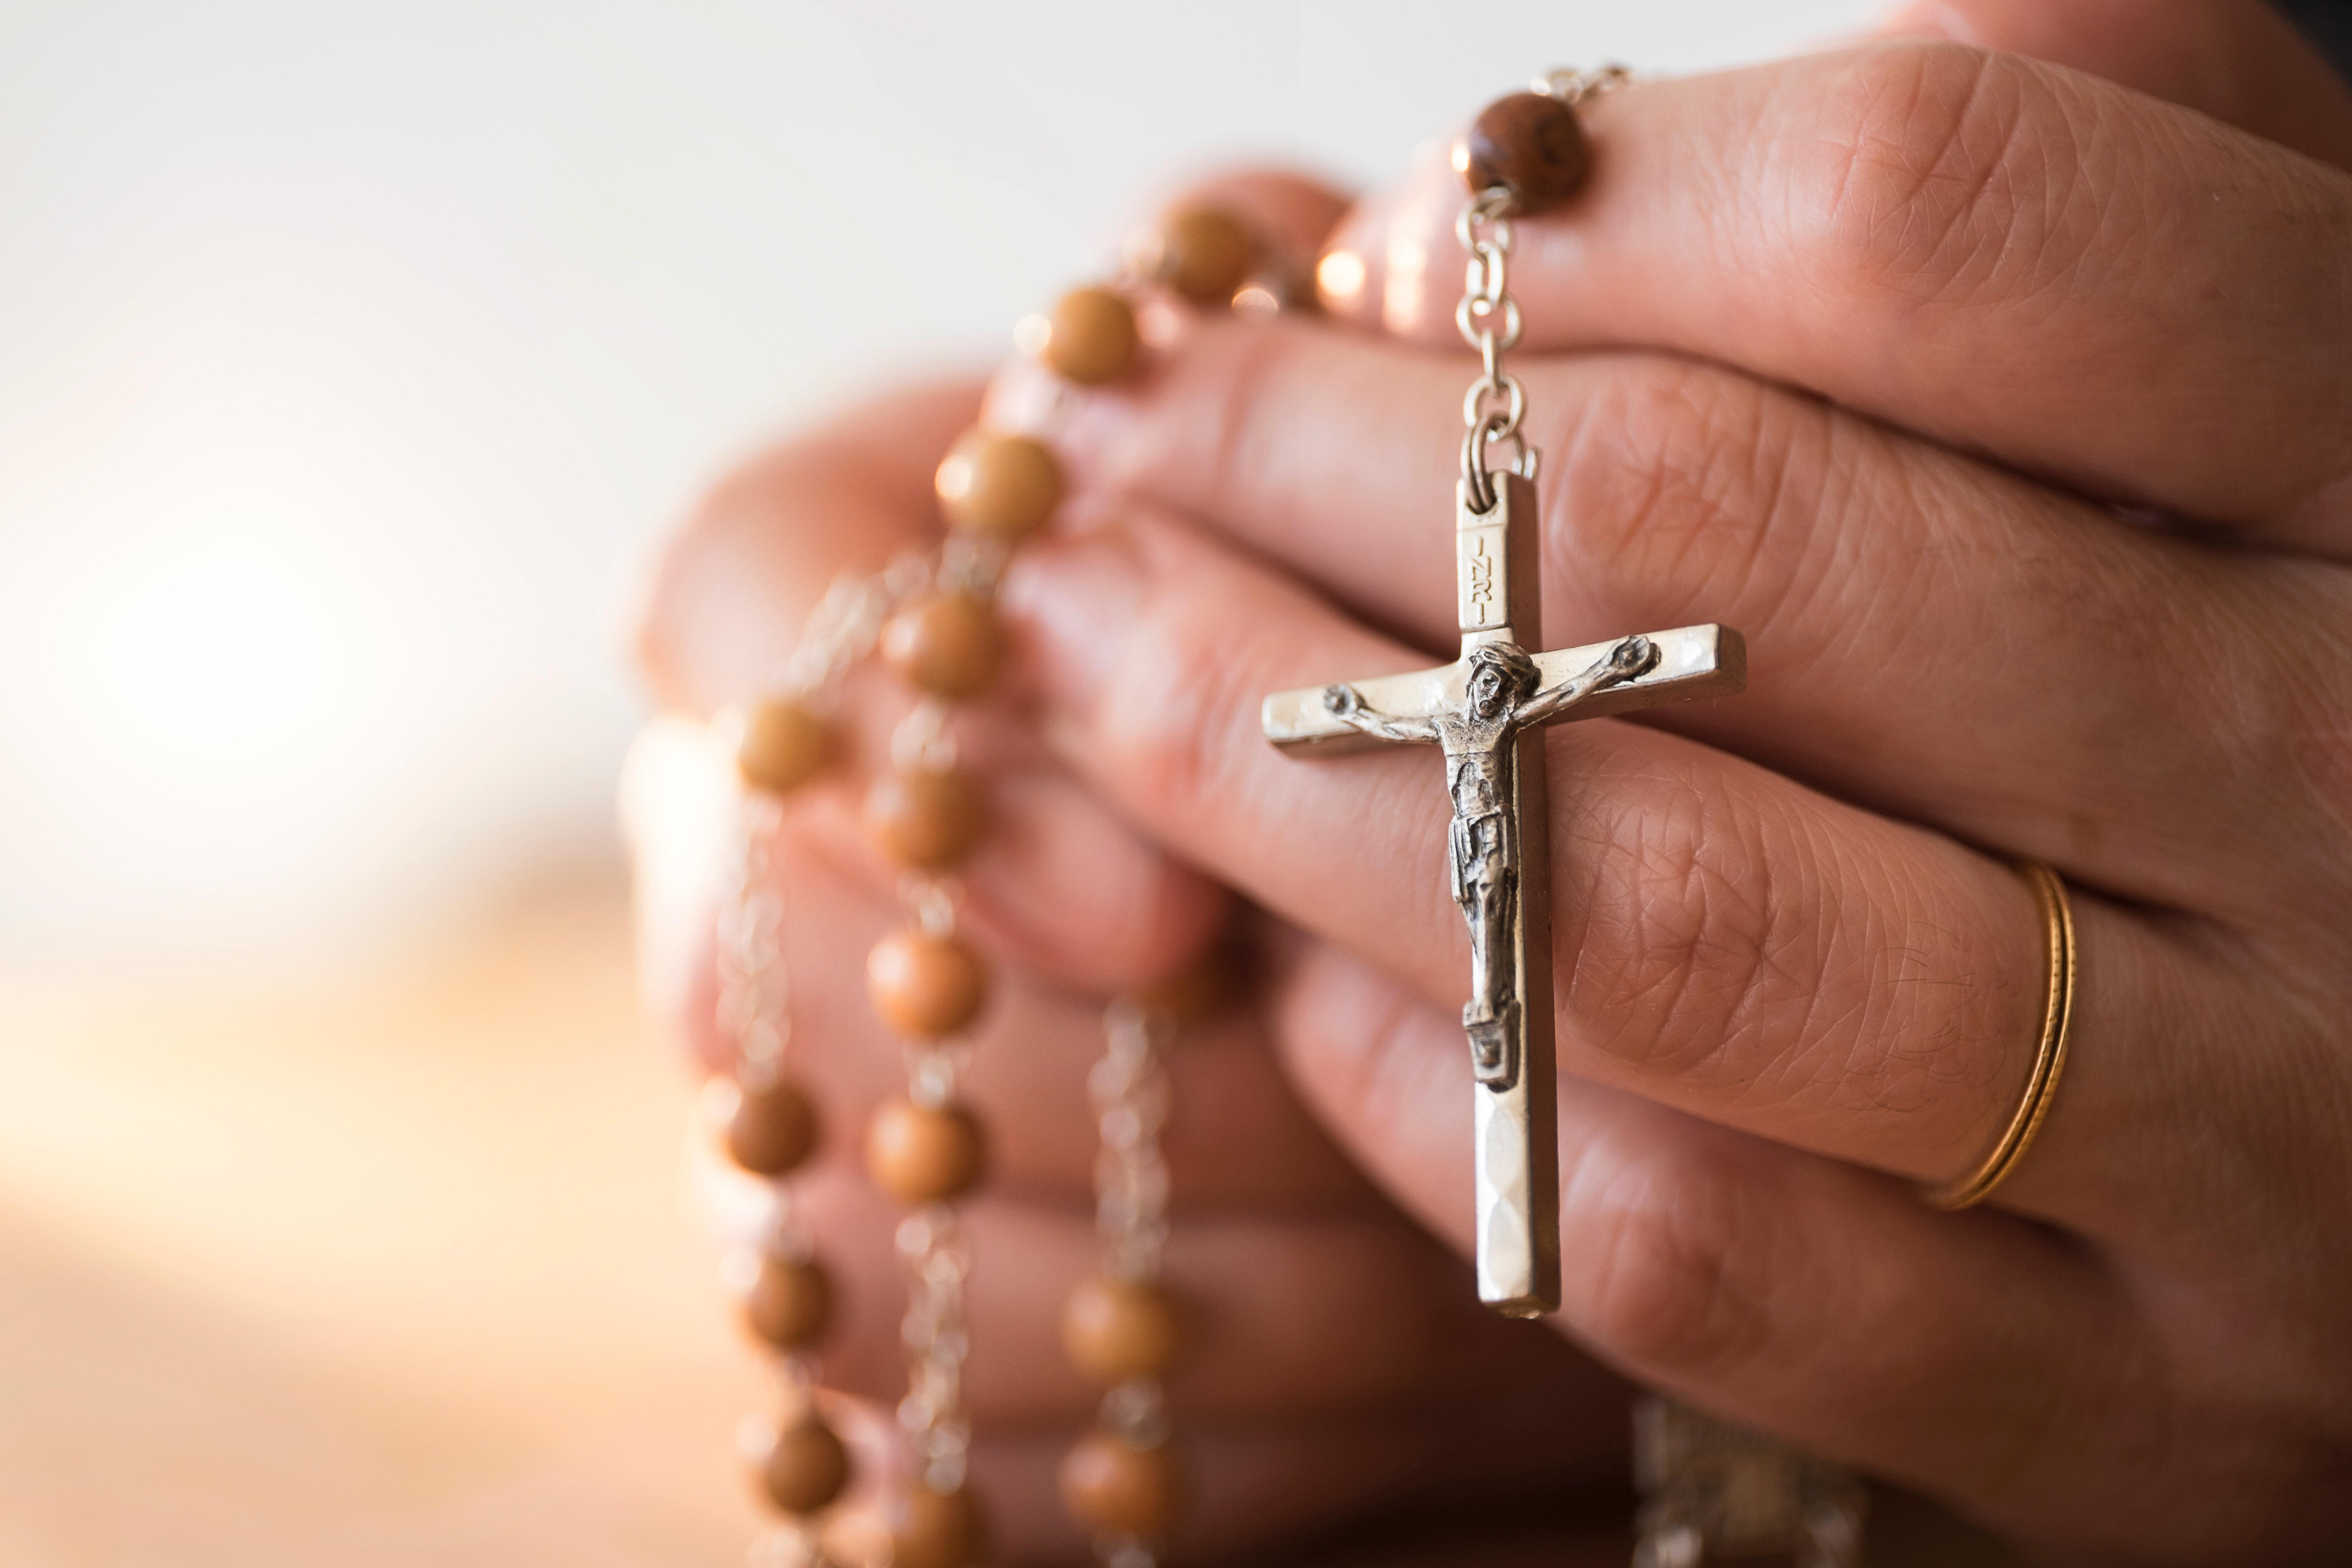 336979e2b Woman praying with rosary beads in hands - World Priest